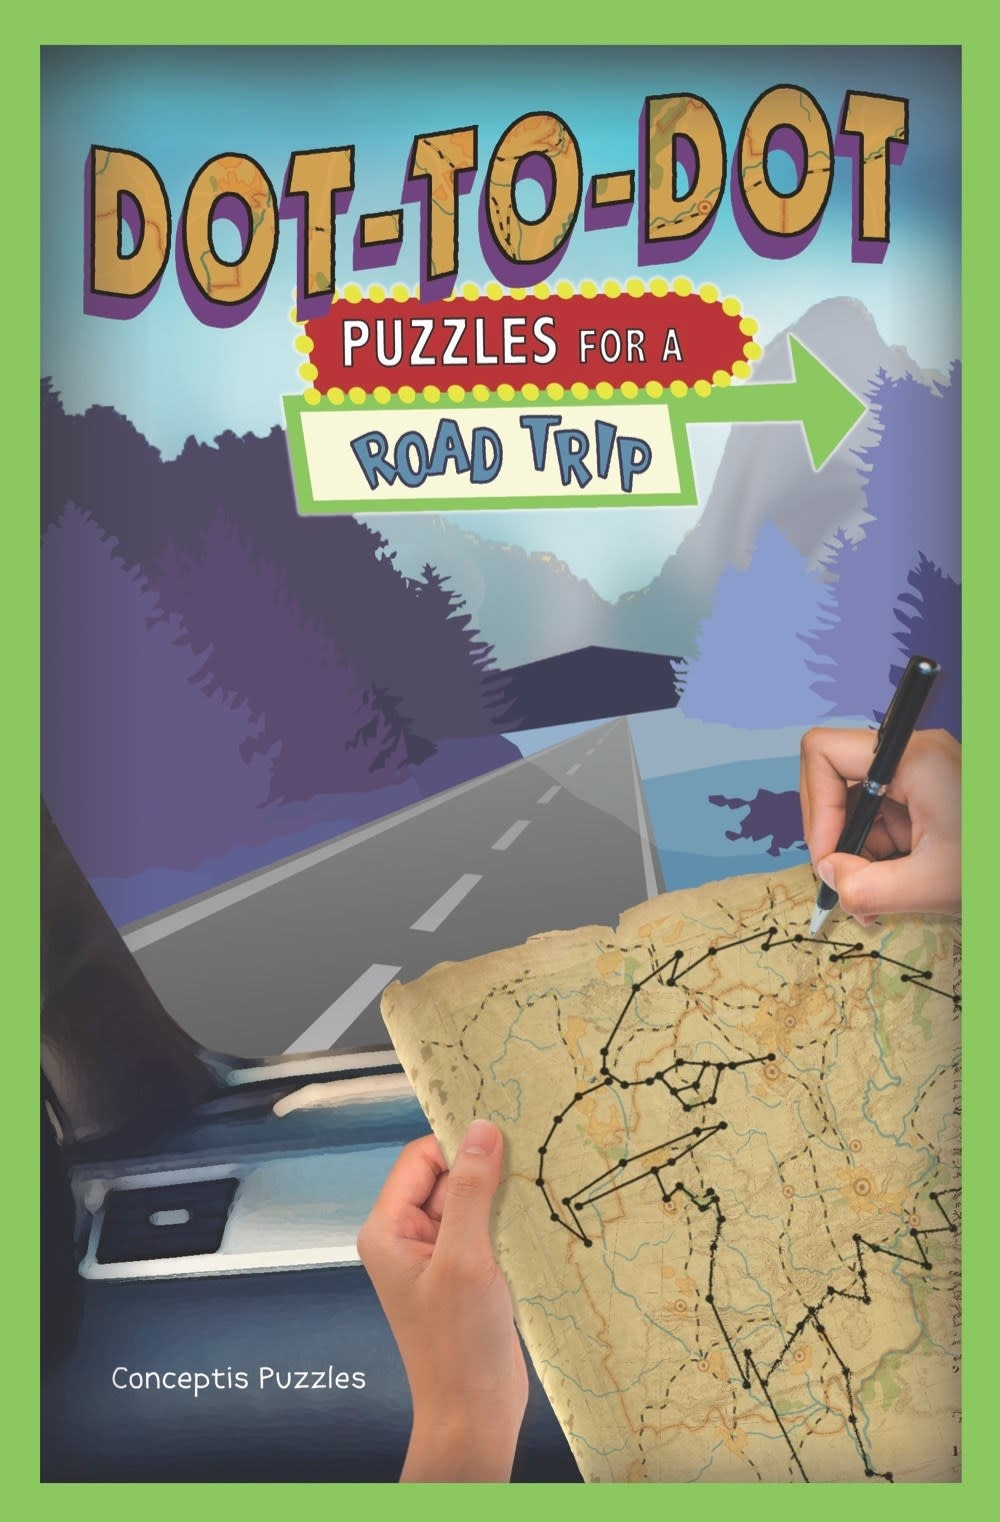 Puzzlewright Junior Puzzles for a Road Trip: Dot-to-Dot